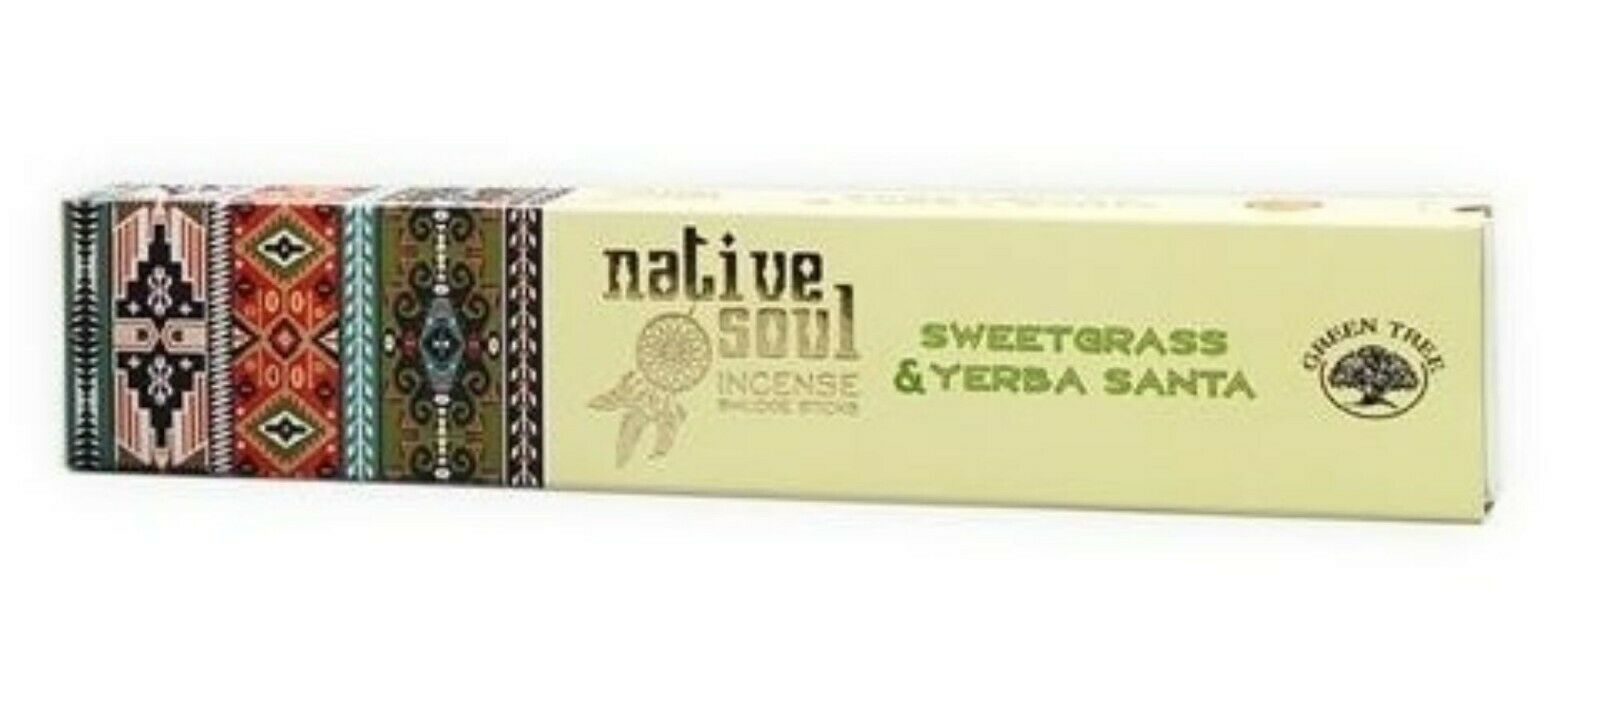 Native Soul Sweetgrass & Yerba Santa